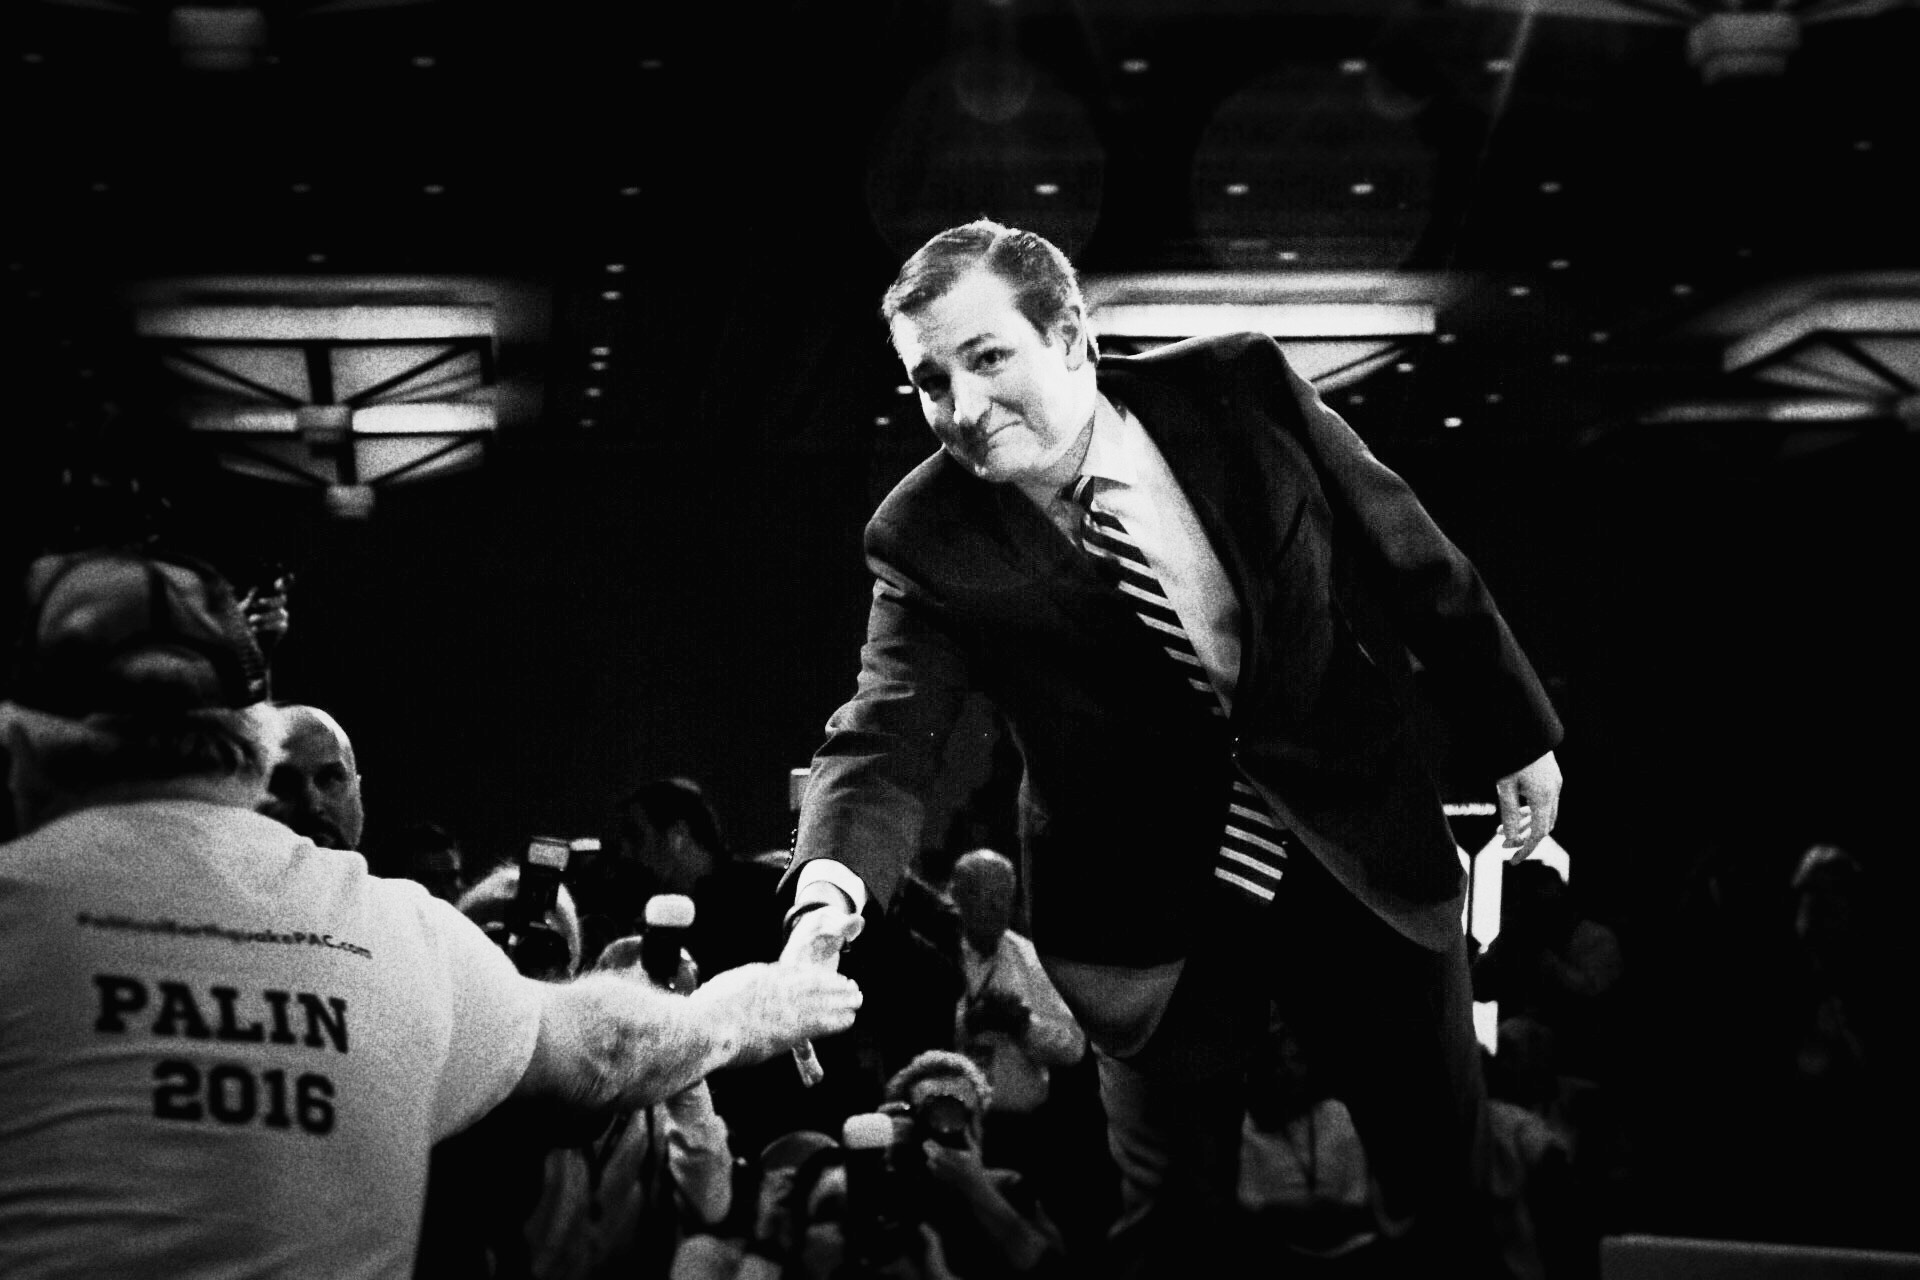 Sen. Ted Cruz shakes hands with a Sarah Palin supporter at CPAC in National Harbor, Md. on Feb. 26, 2015.